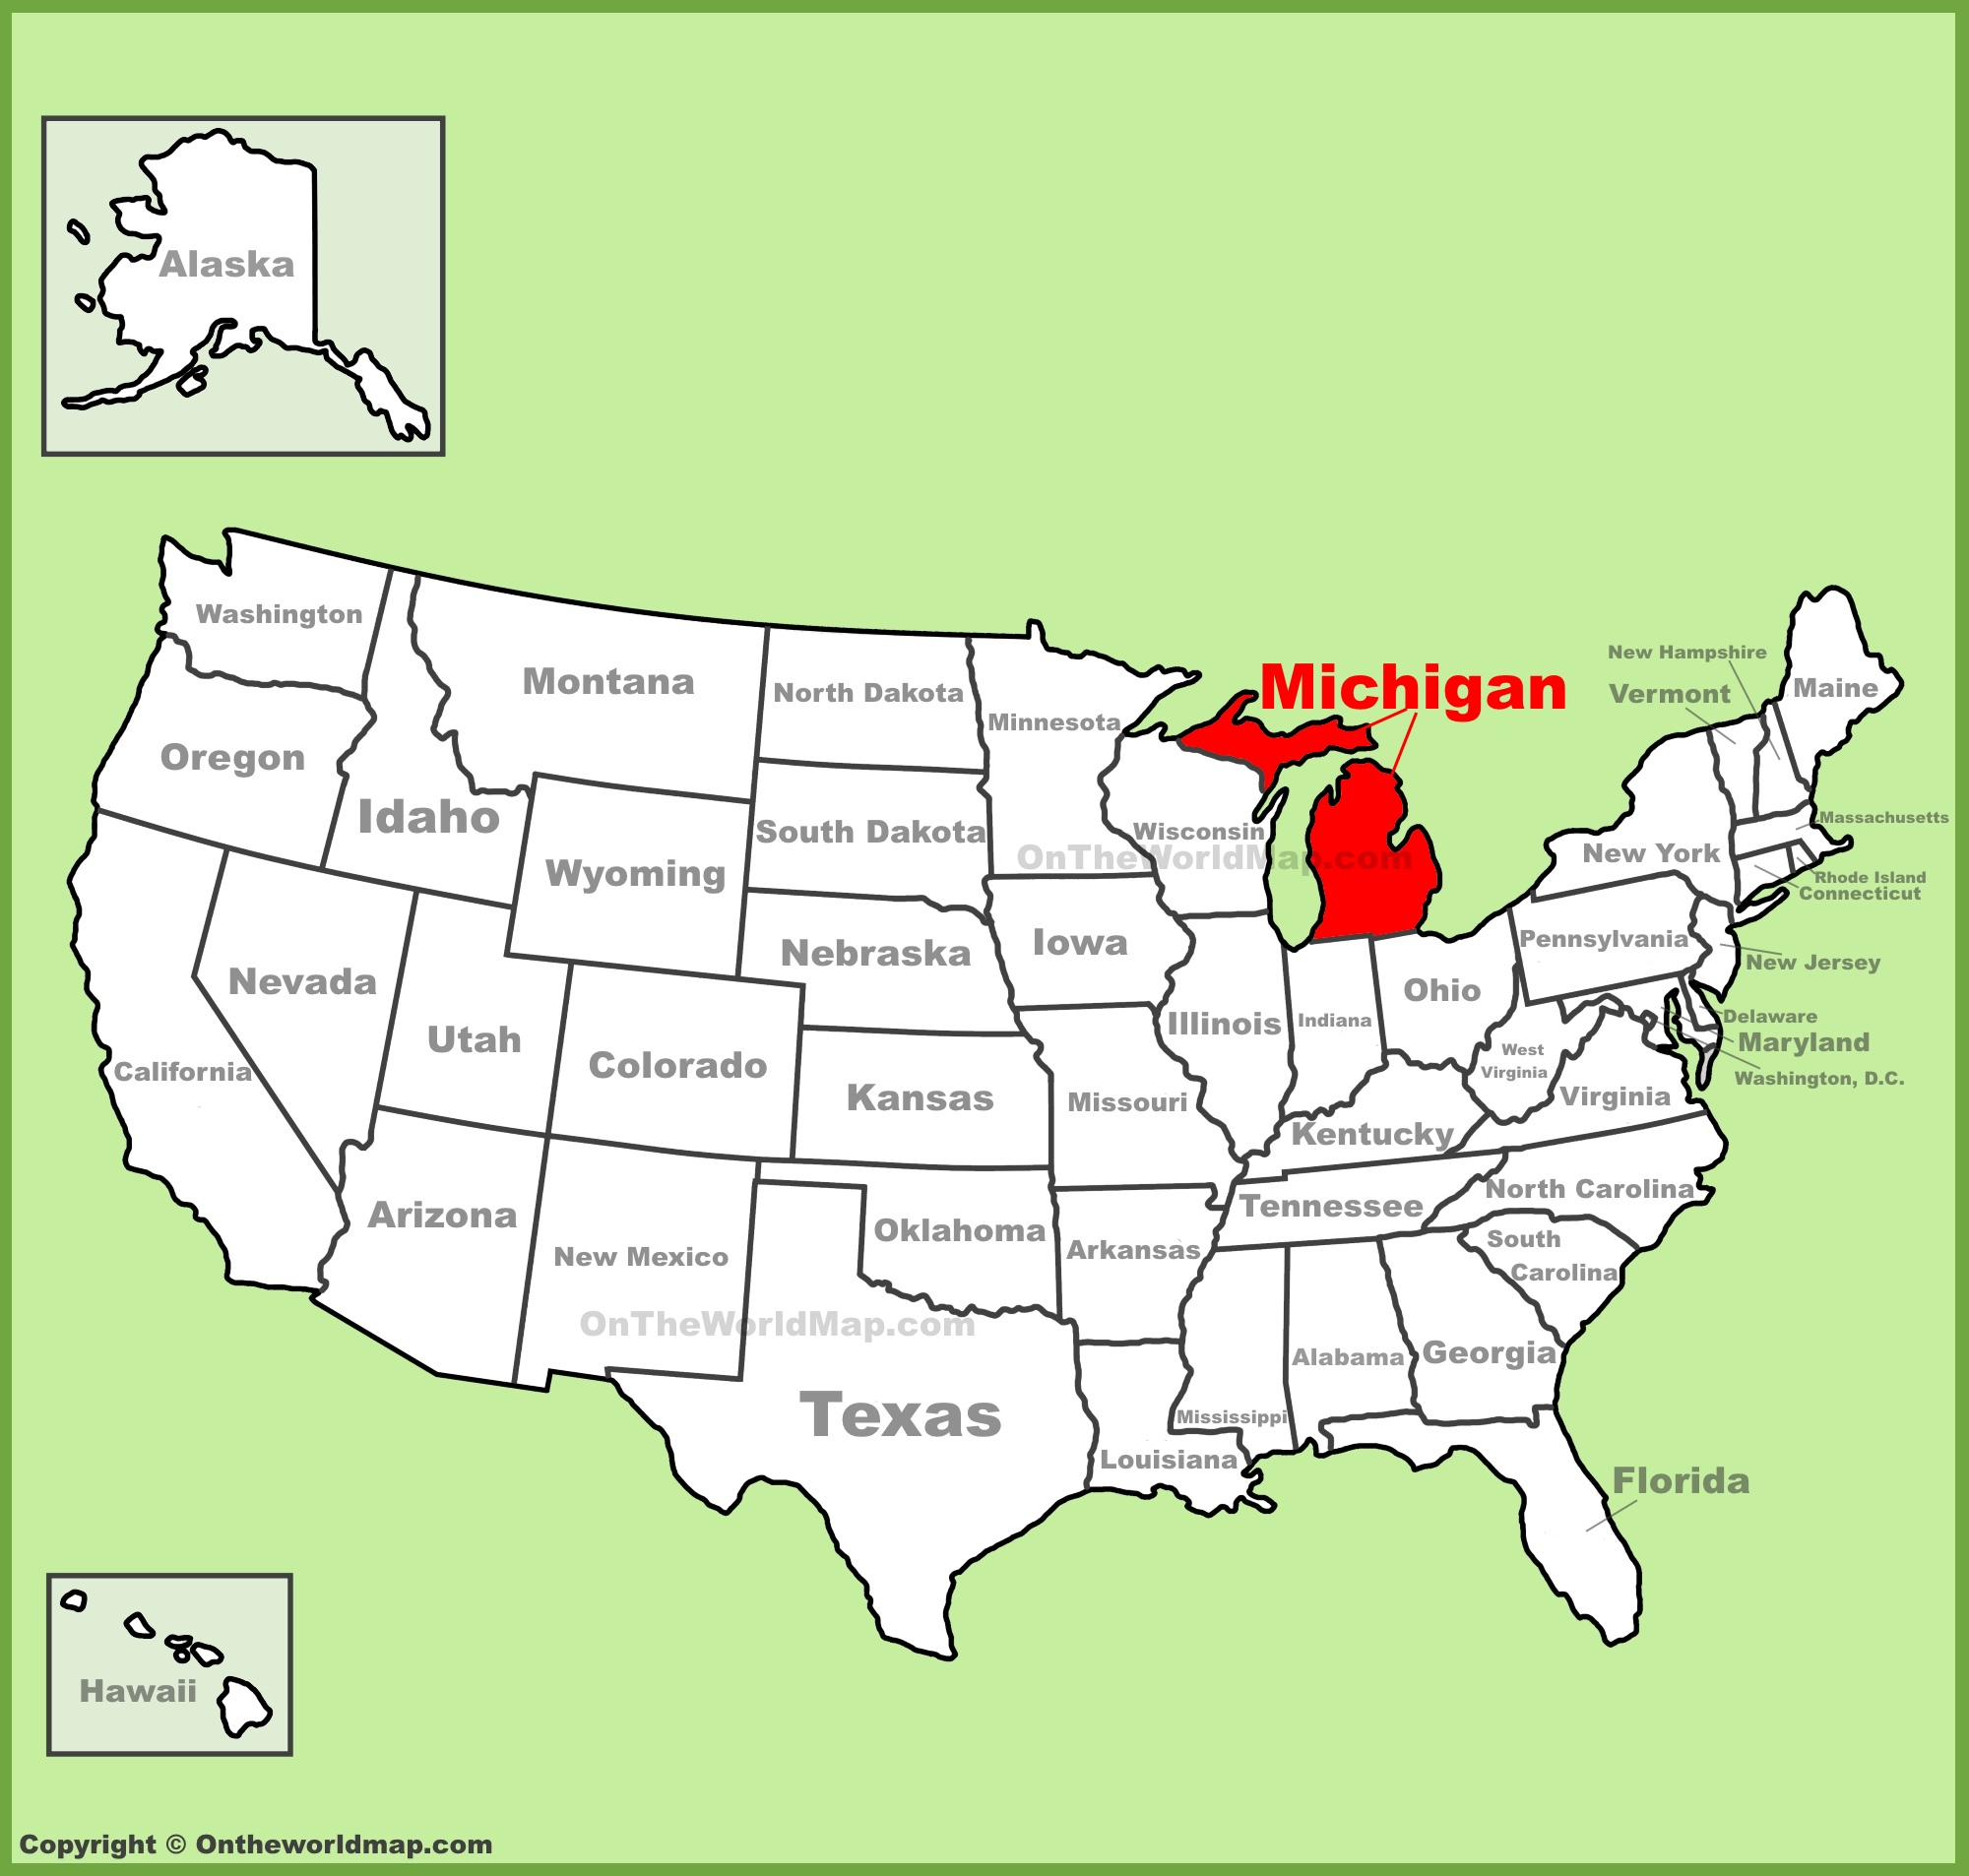 Michigan State Maps USA Maps Of Michigan MI - State map of michigan